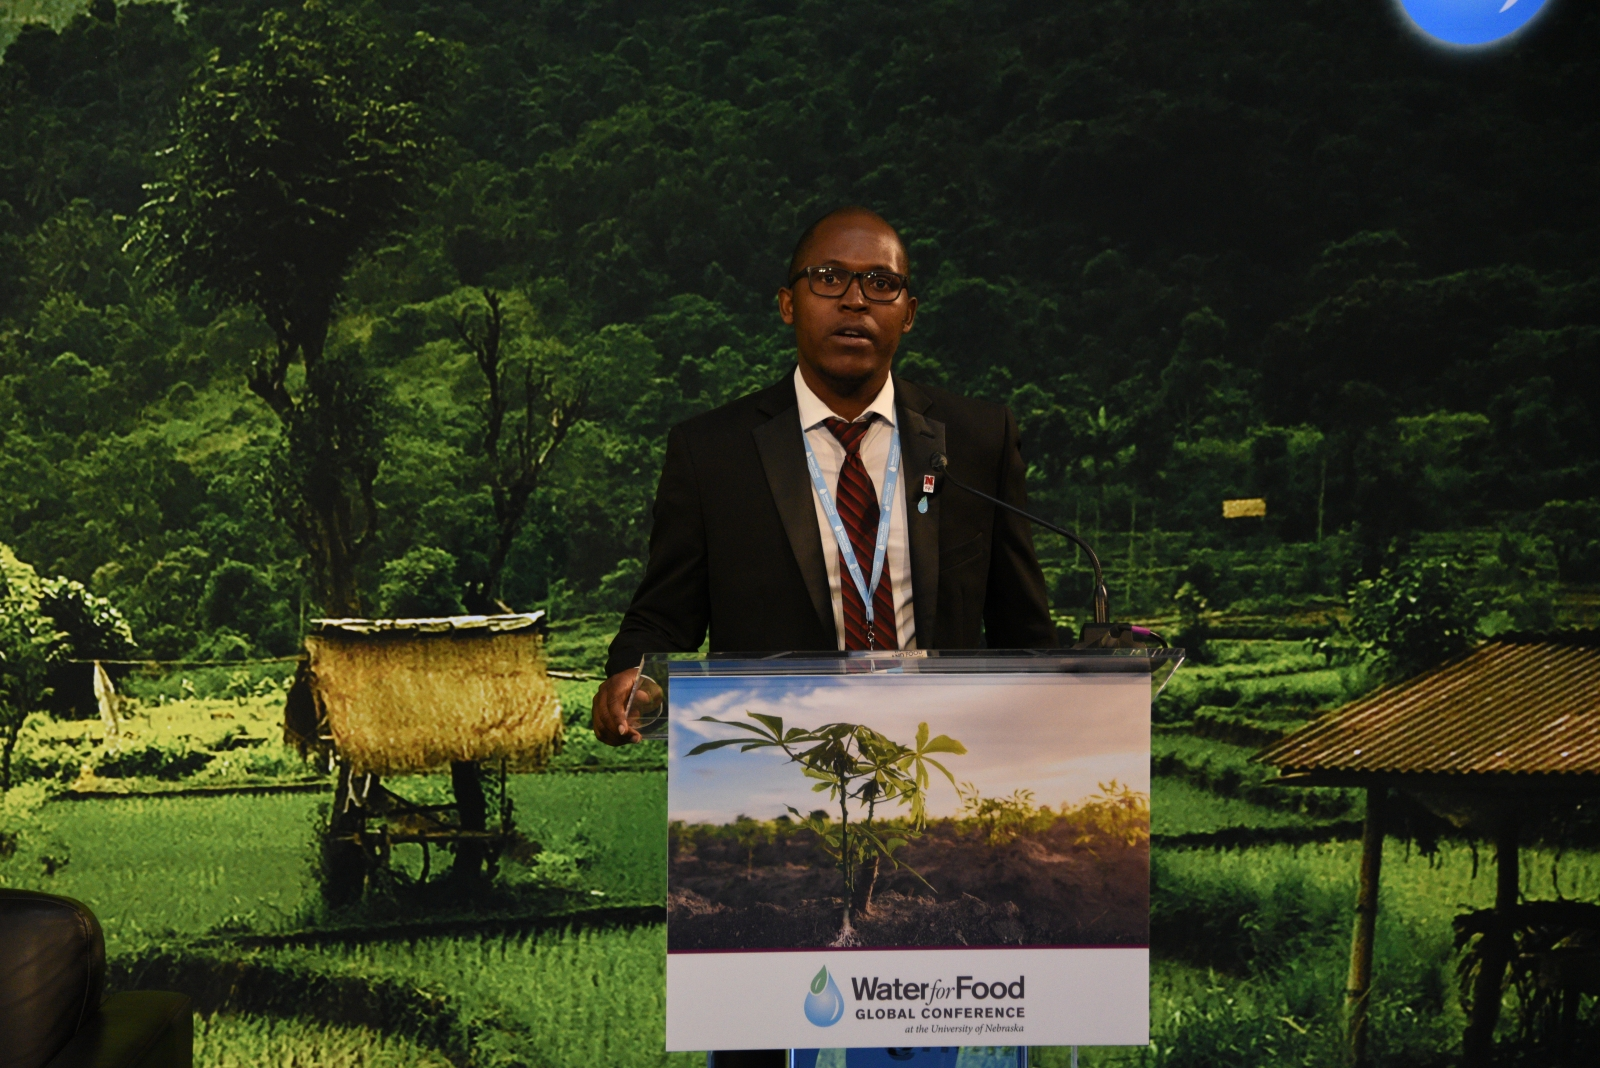 Mavuto Banda speaks about his international education experience at the Water for Food Global Conference